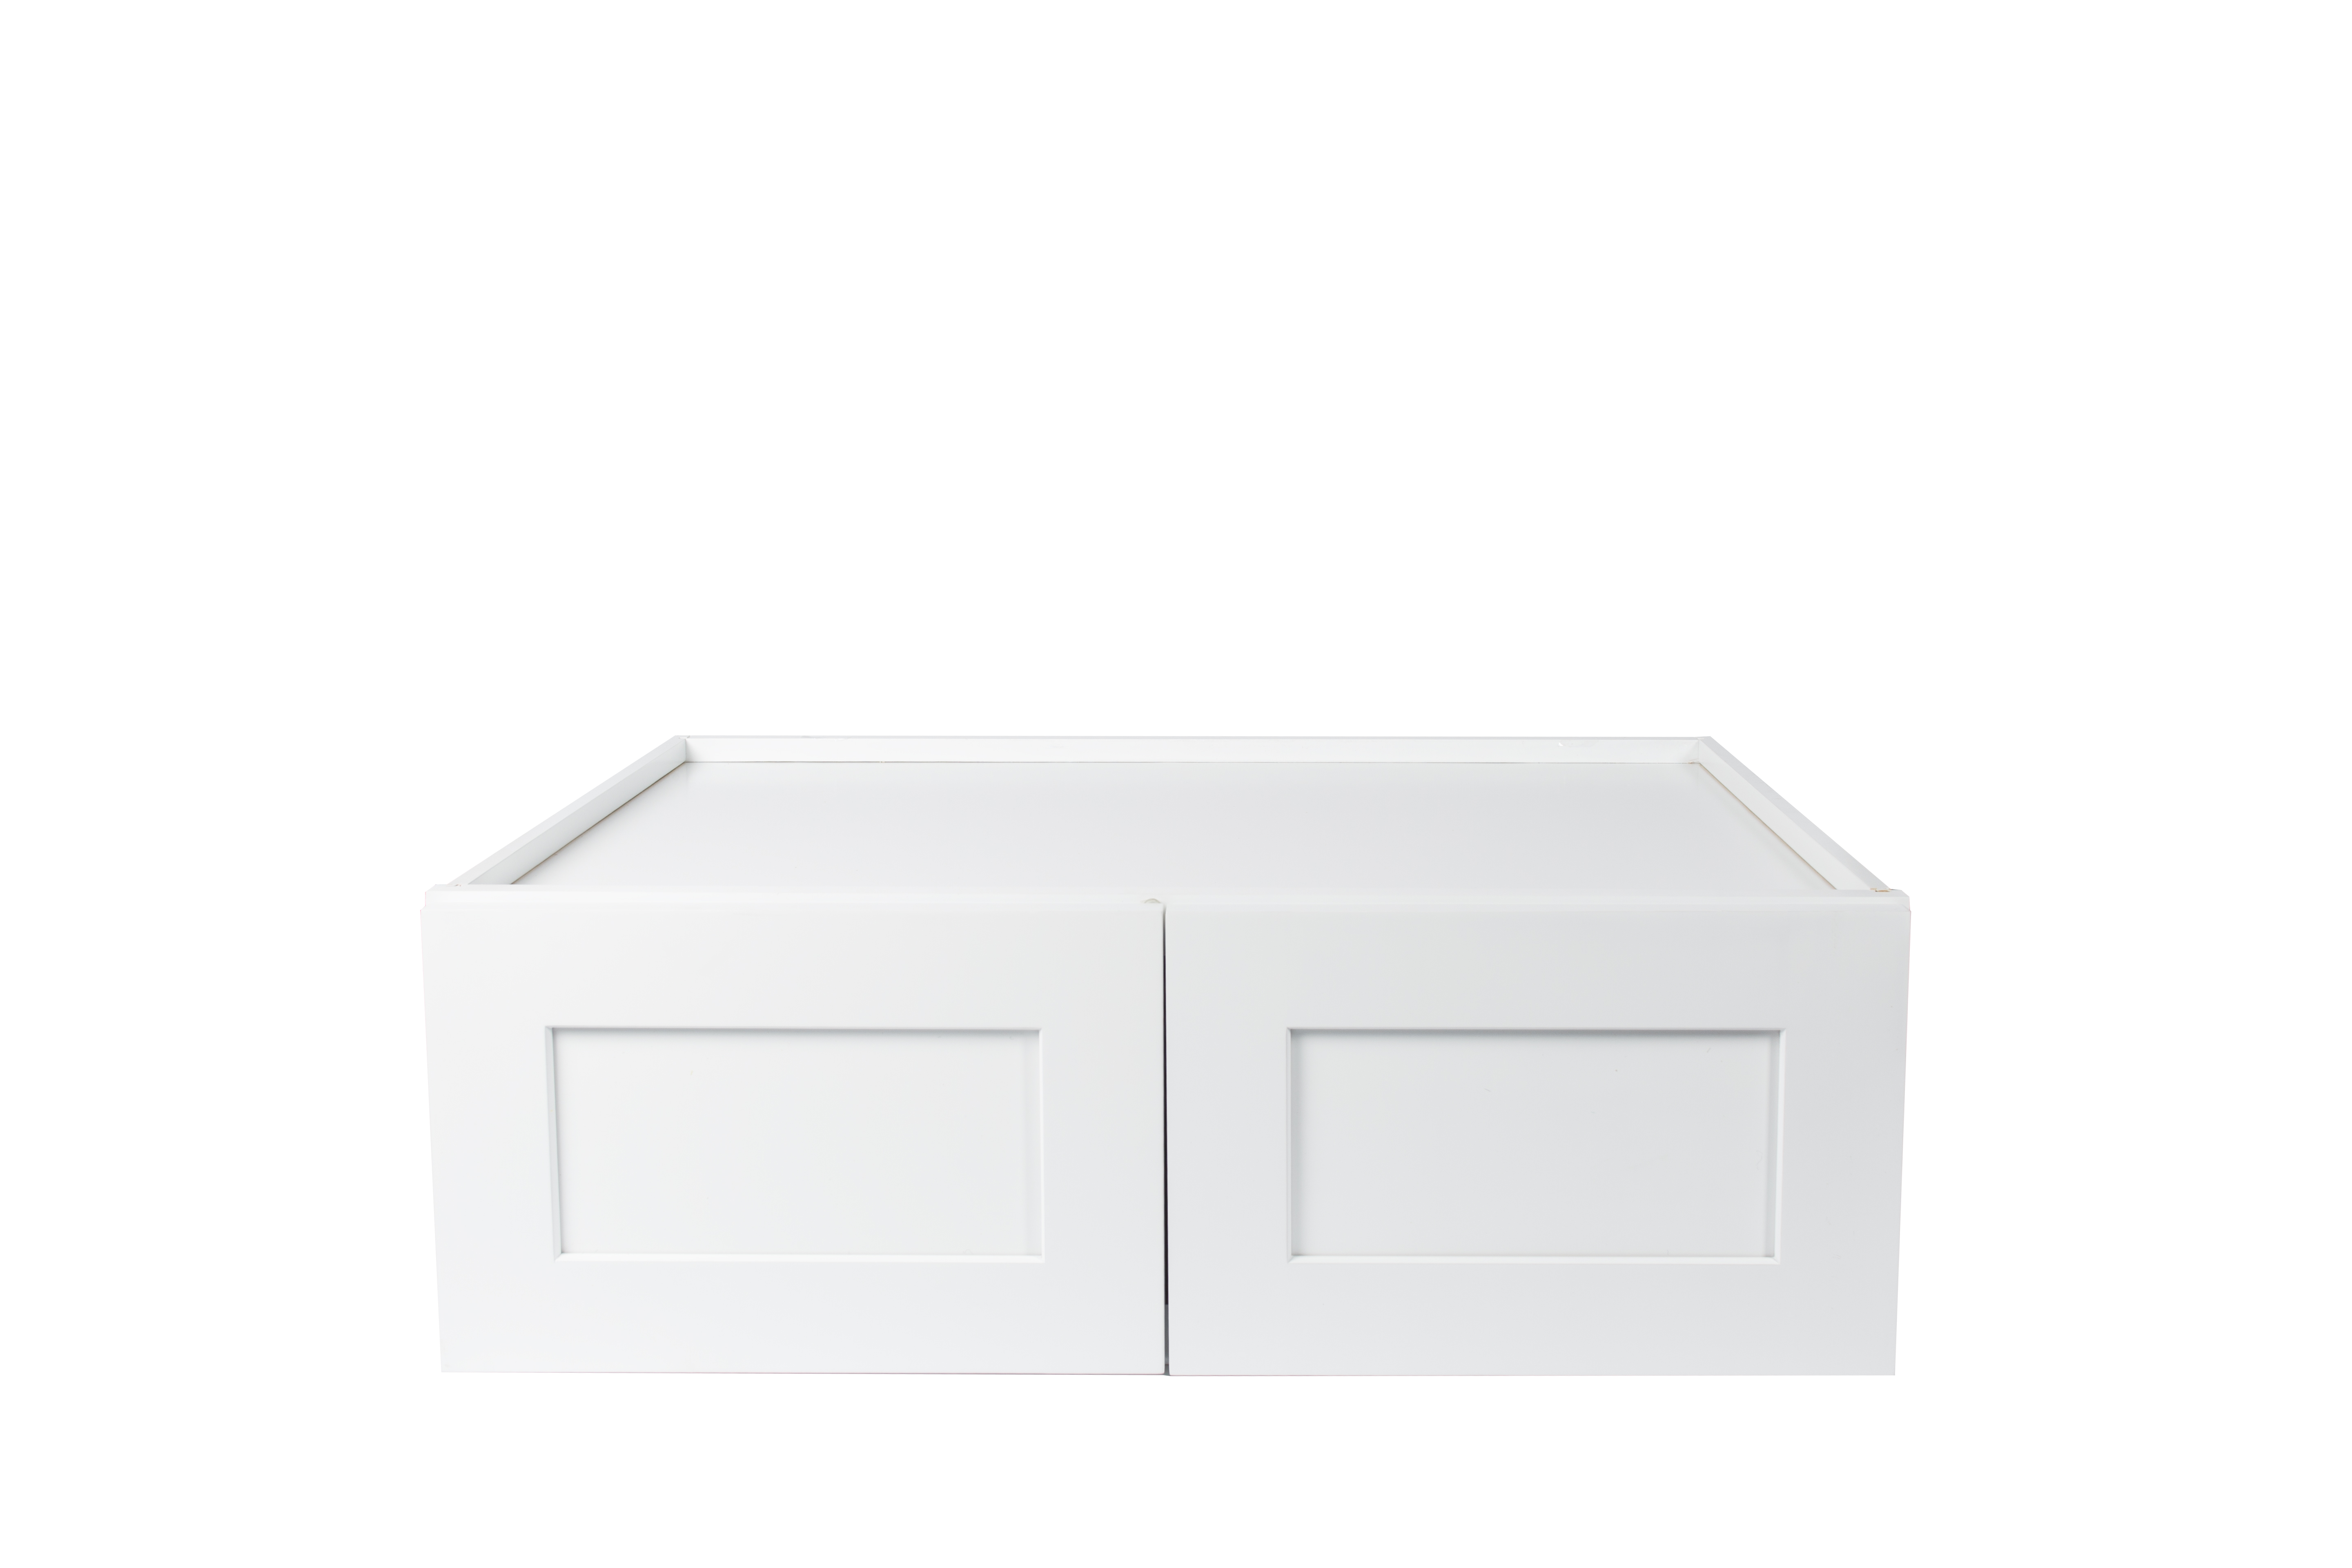 Ready to Assemble 33x21x12 in. Shaker High Double Door Wall Cabinet in White